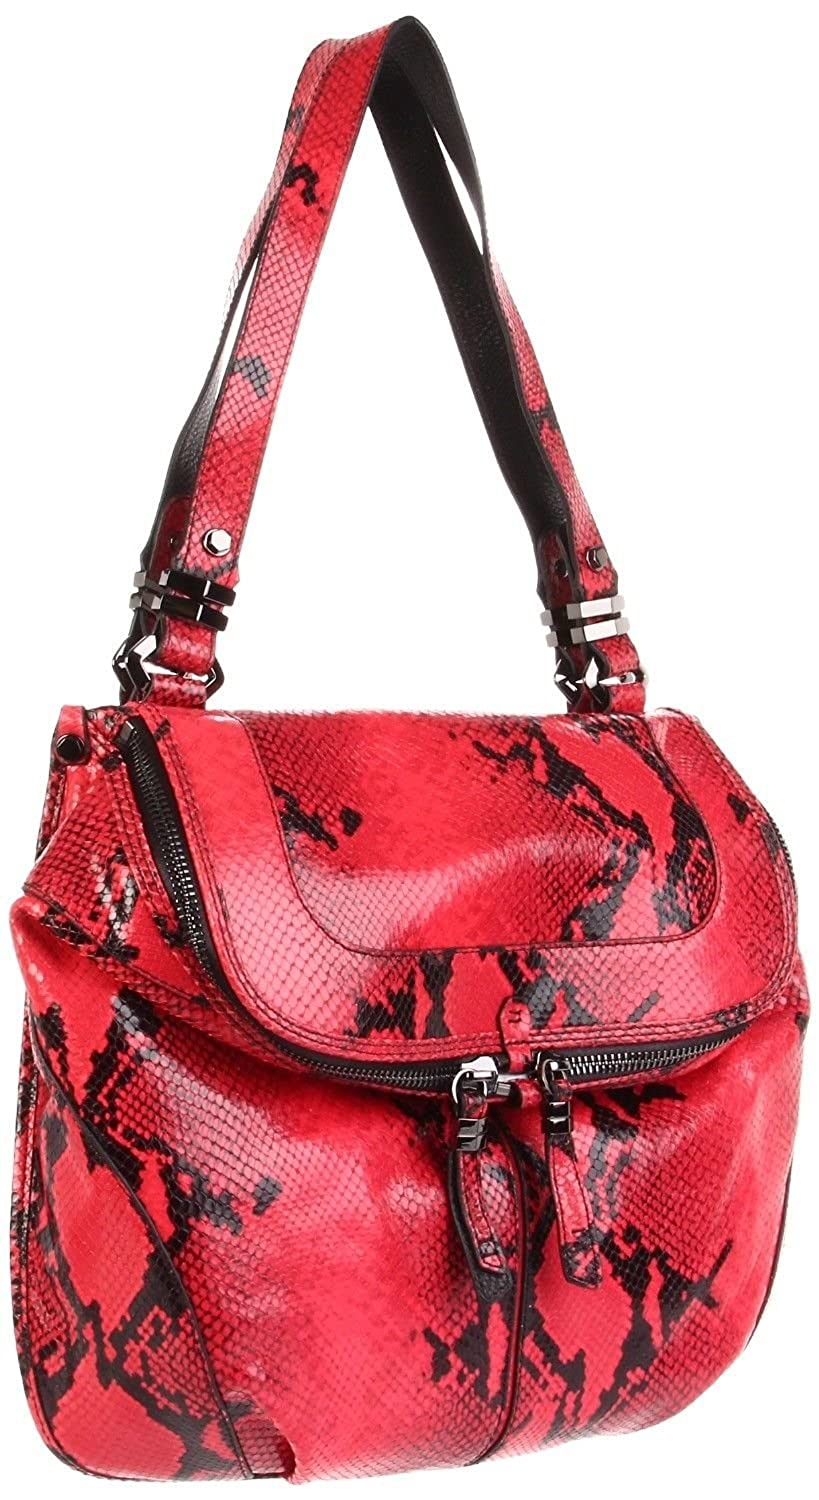 ORYANY Raspberry Snake Embossed Leather Shoulder Handbag Bag ZP968 NWT